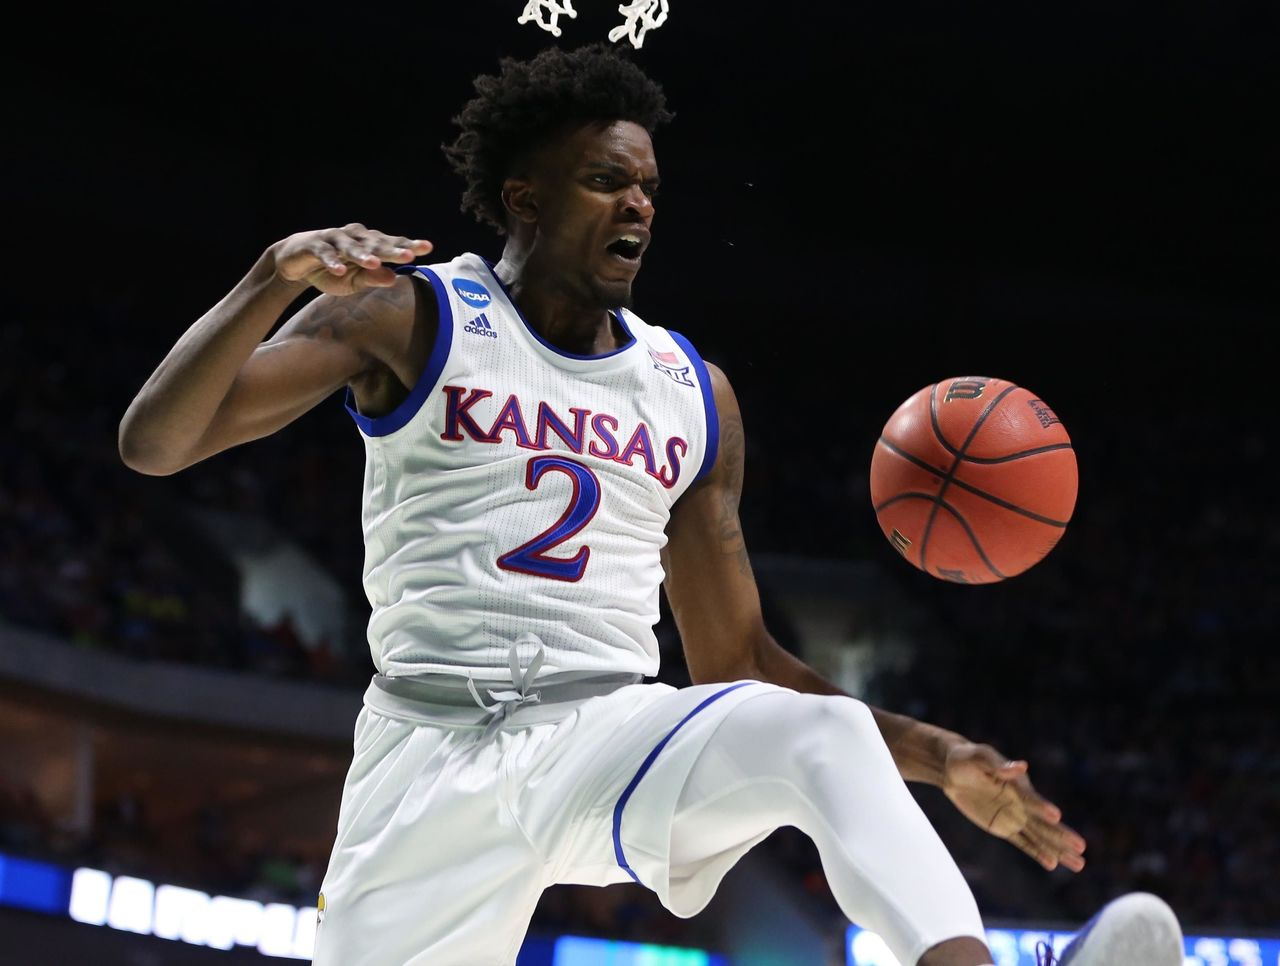 Cropped 2017 03 19t231635z 1643659141 nocid rtrmadp 3 ncaa basketball ncaa tournament second round kansas vs michigan state